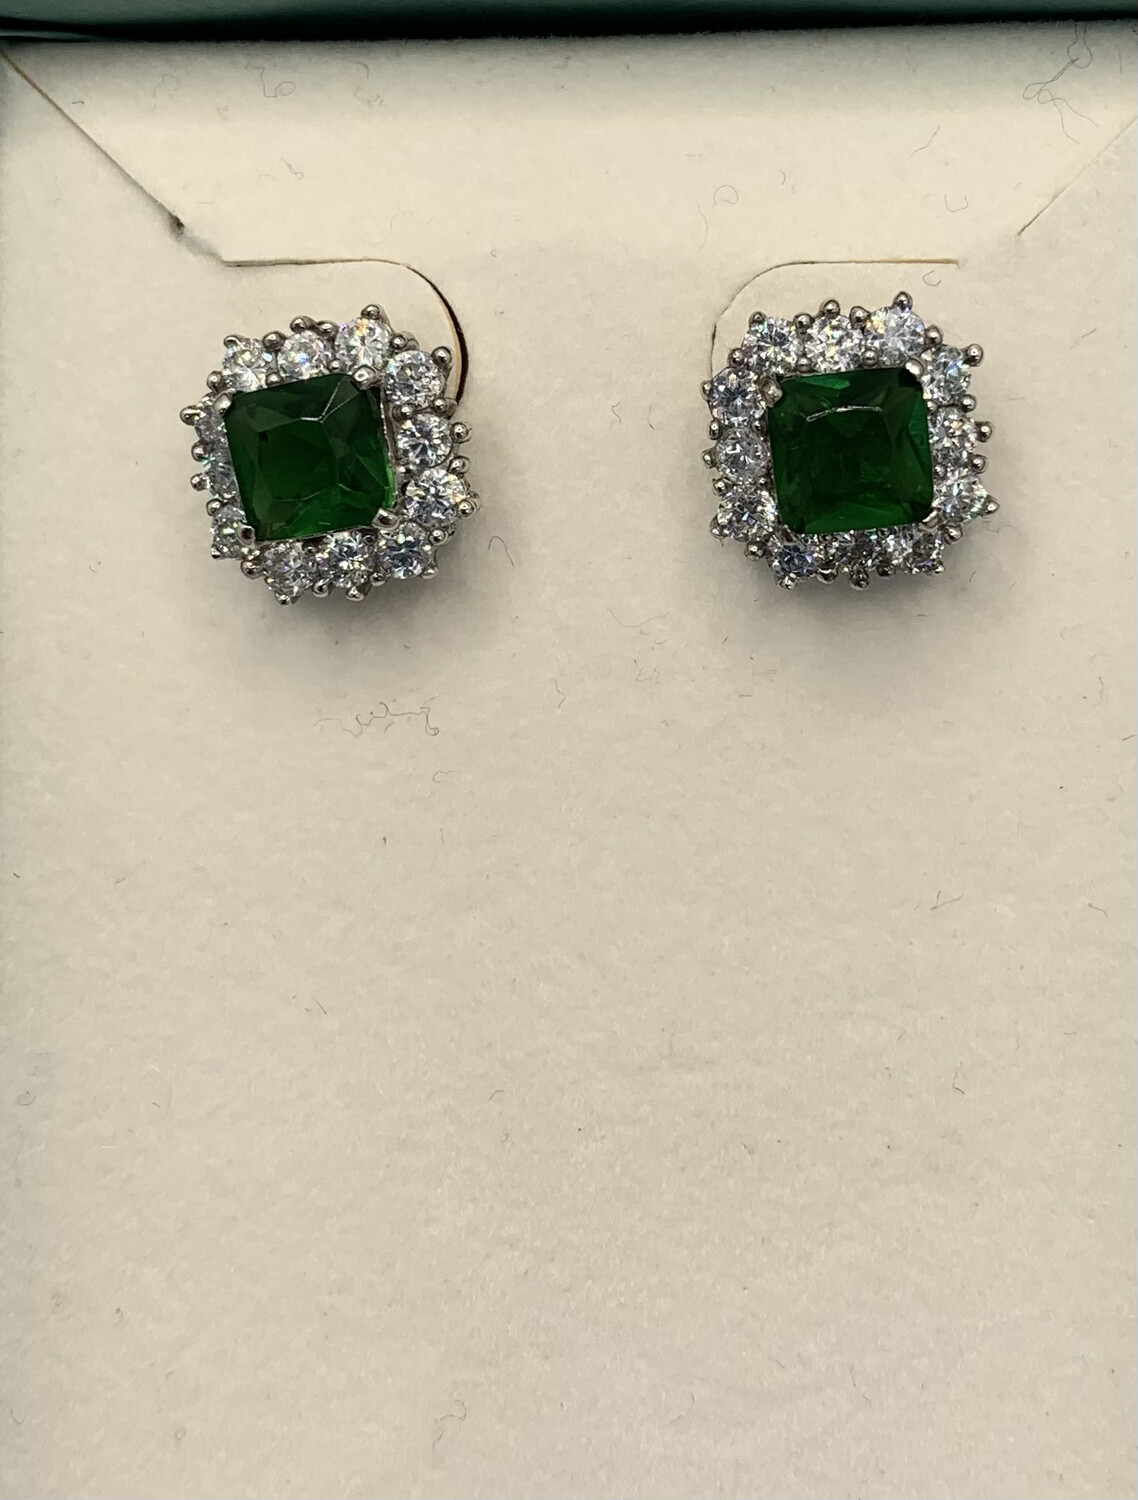 Synthetic Emerald With Halo Post Earrings